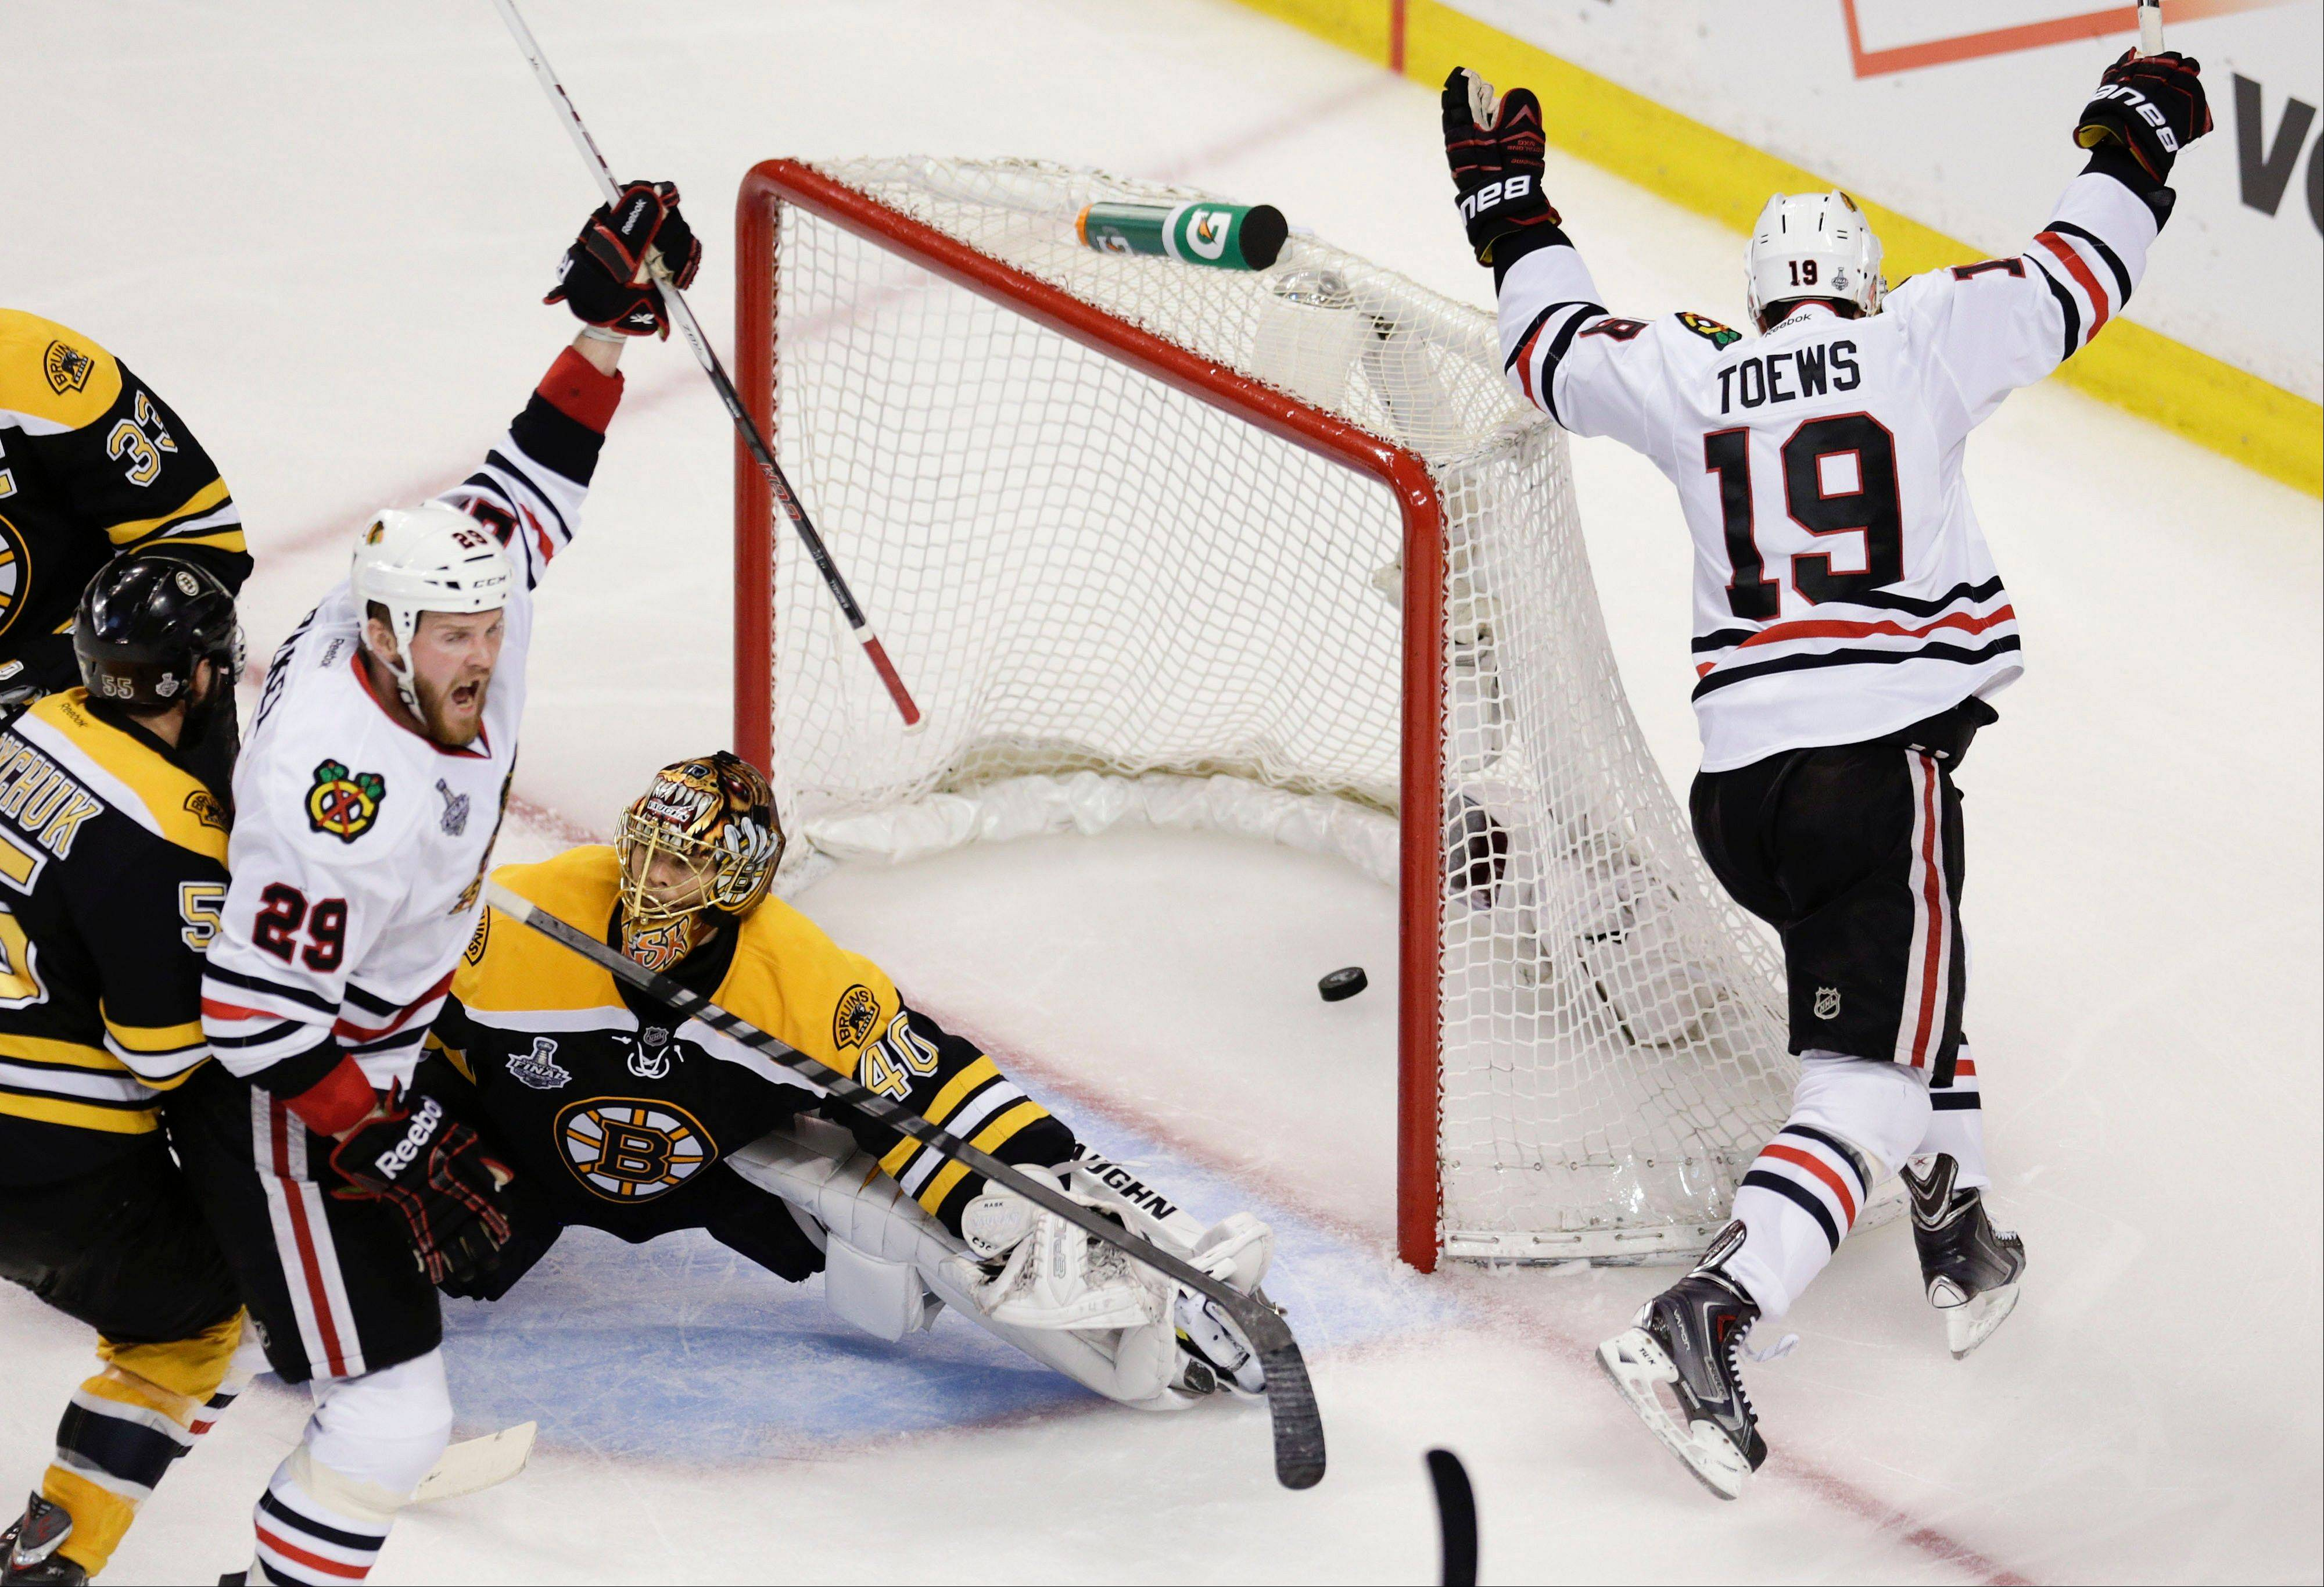 Chicago Blackhawks center Jonathan Toews (19) celebrates his goal against Boston Bruins goalie Tuukka Rask (40), of Finland, as Chicago Blackhawks left wing Bryan Bickell (29) joins the celebration during the second period in Game 4 of the NHL hockey Stanley Cup Finals.